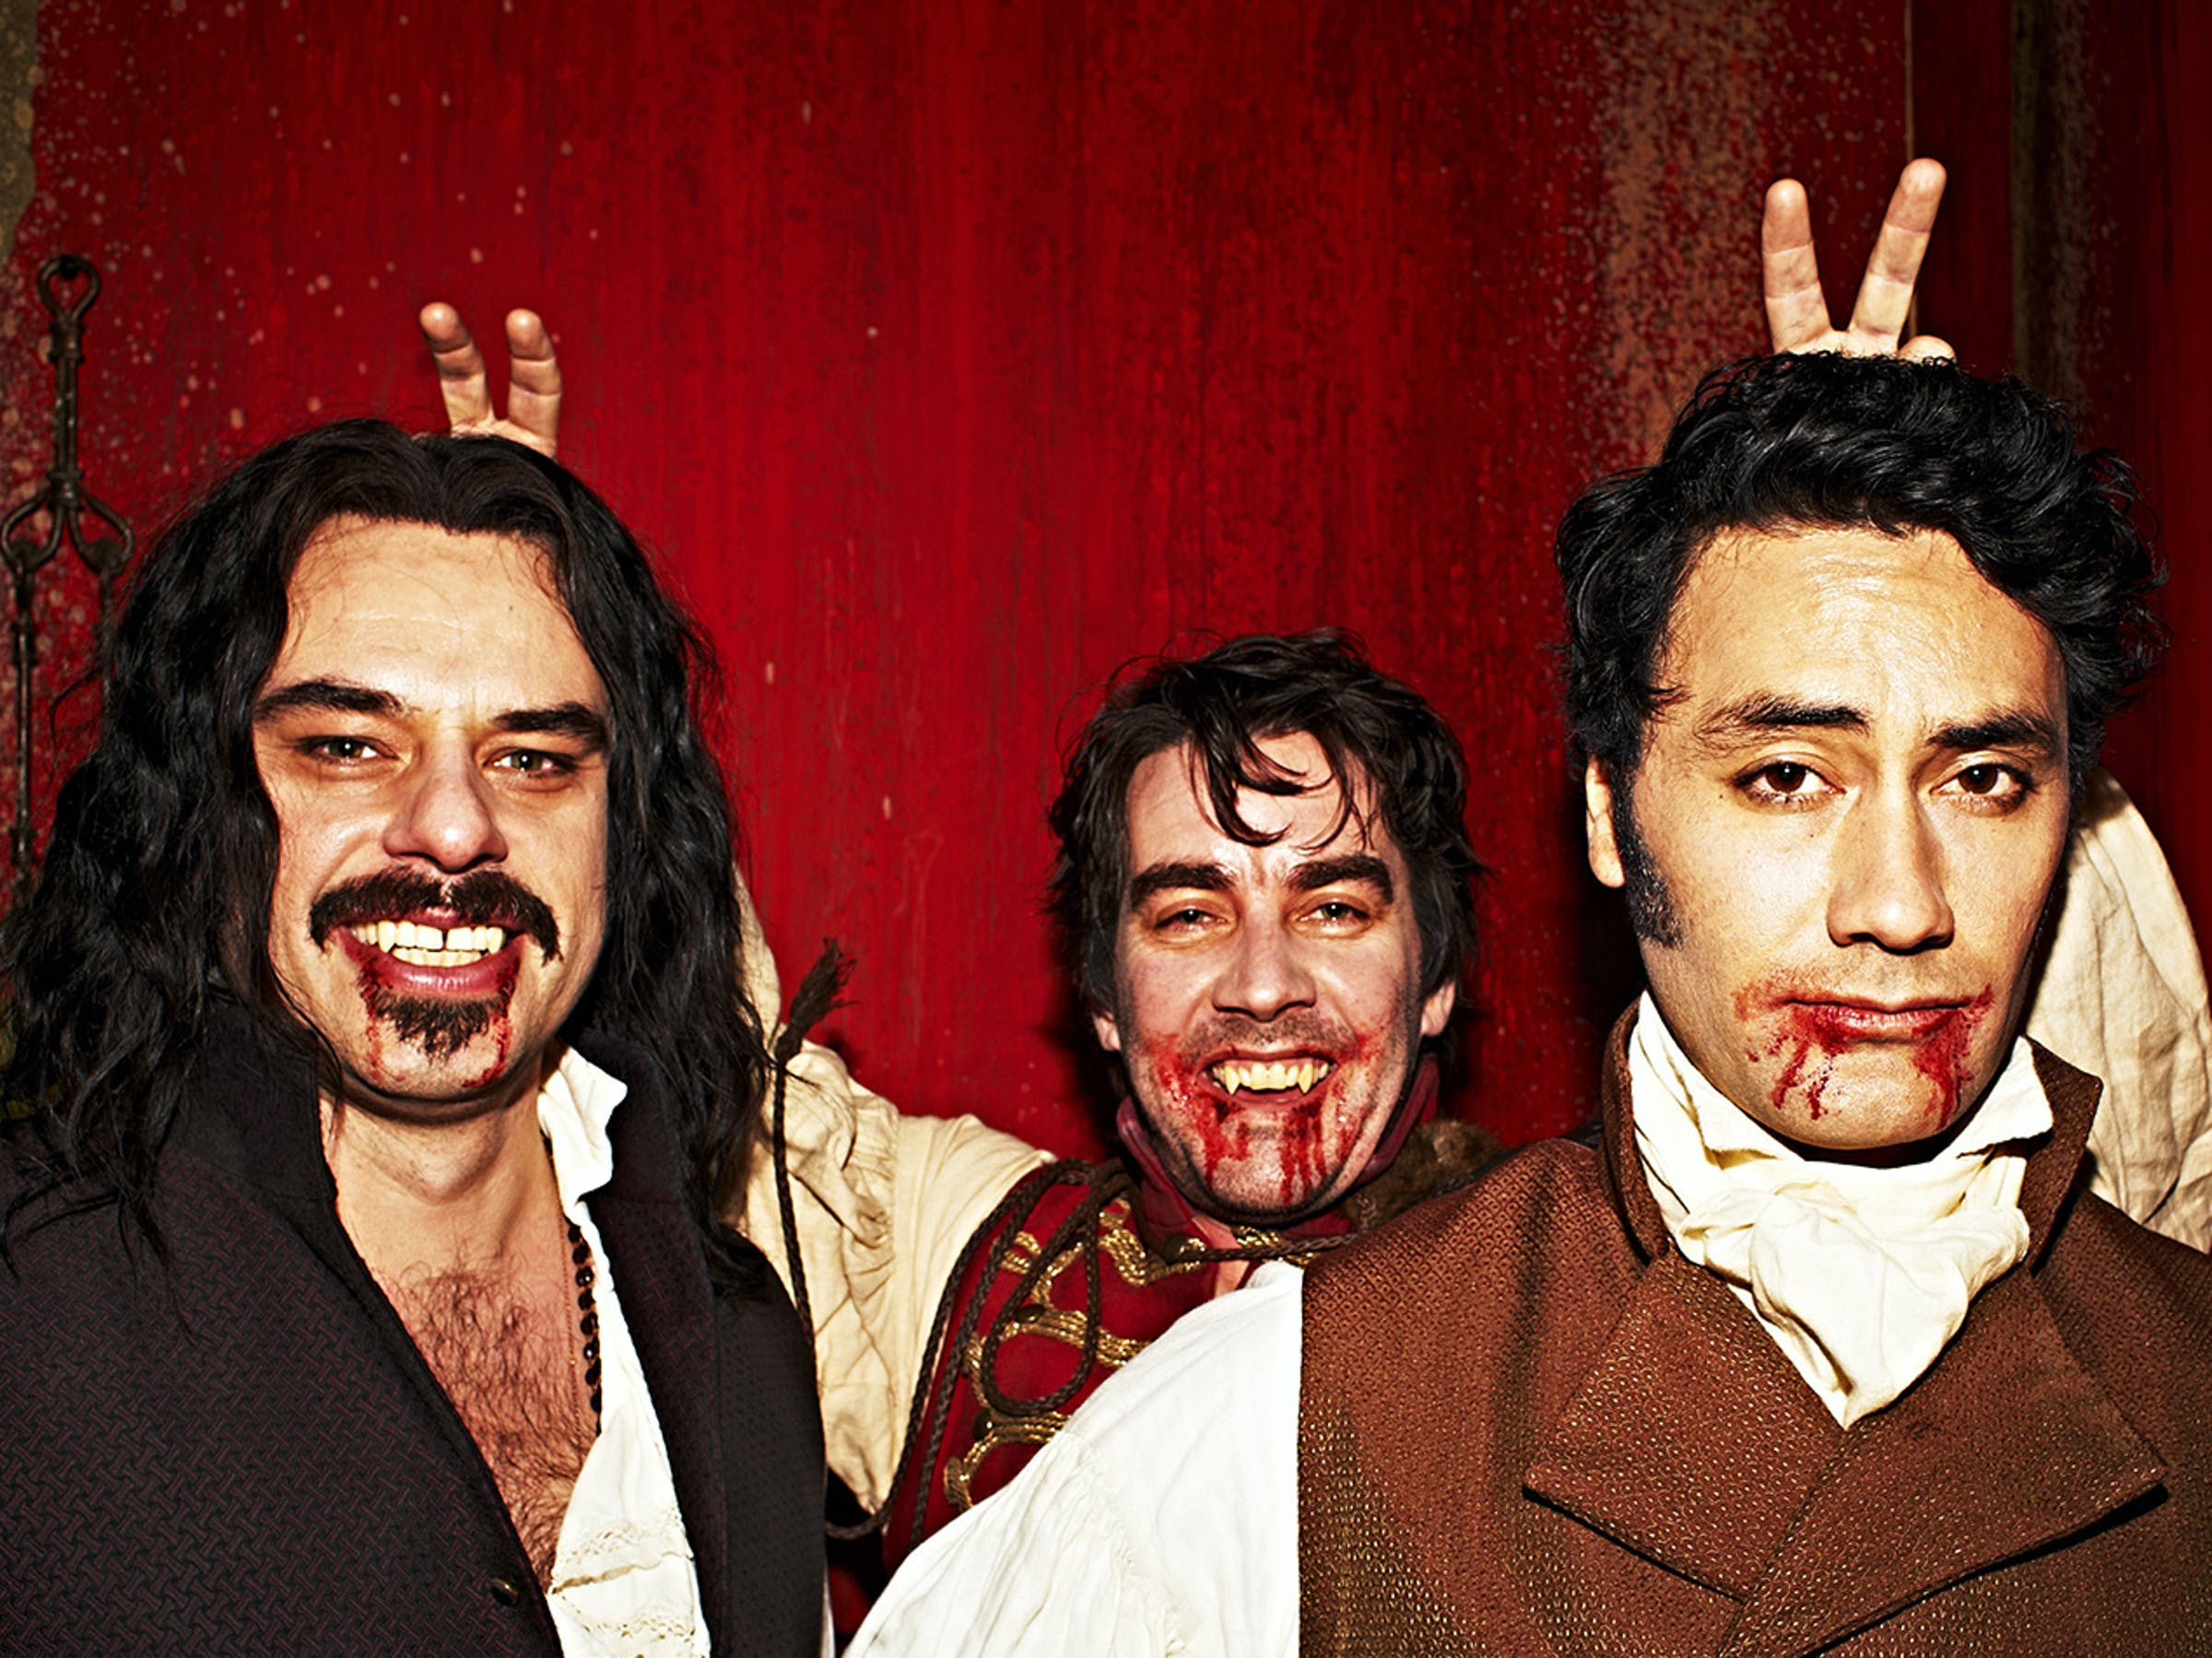 Just when you thought you were sick of vampires, 'What We Do in the Shadows' came along to fix the genre.